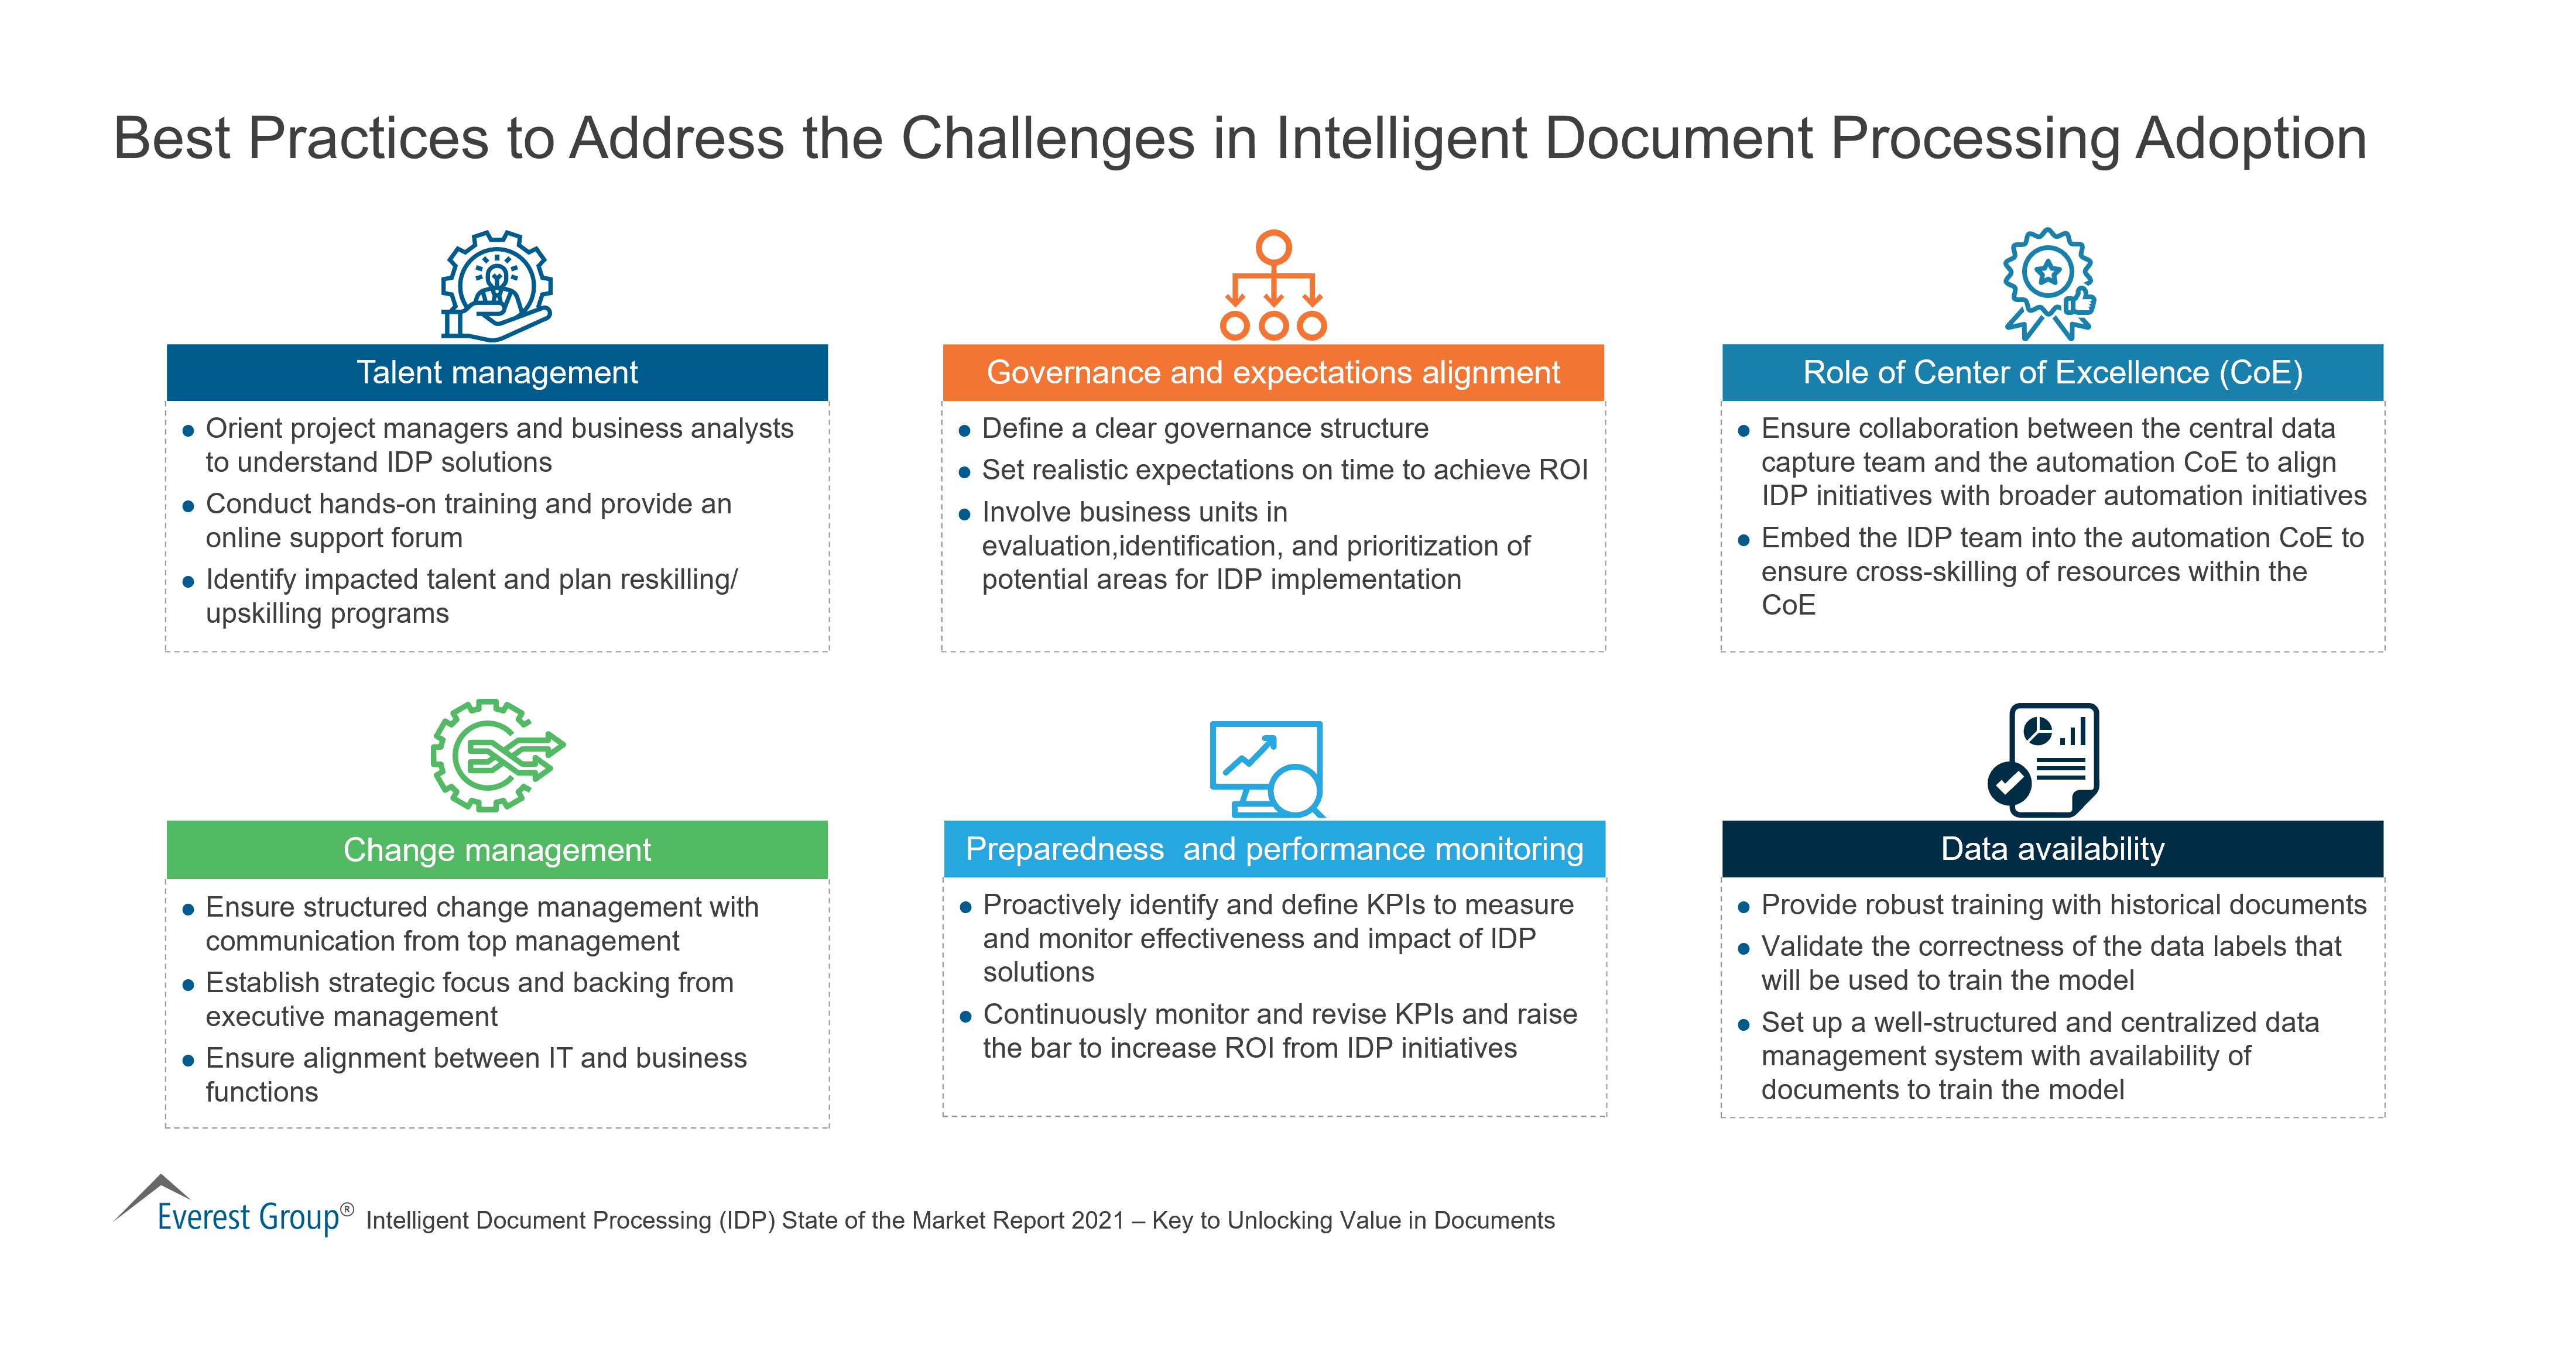 Best Practices to Address the Challenges in Intelligent Document Processing Adoption